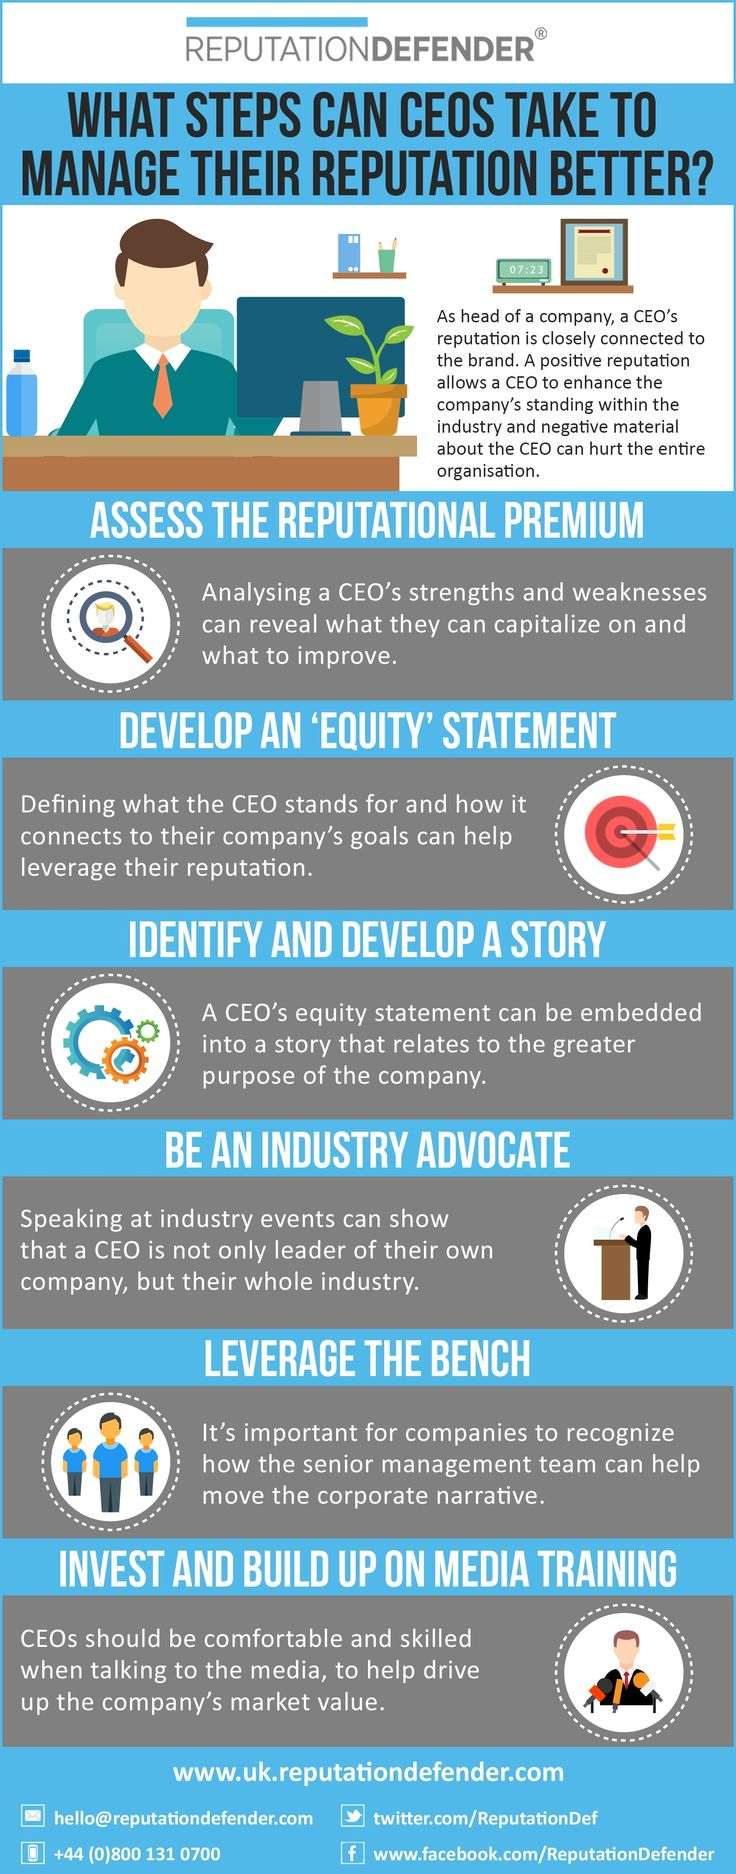 As head of a company, a CEO's reputation is closely connected to the brand. A positive reputation allows a CEO to enhance the company's standing within the industry and negative material about the CEO can hurt the entire organisation.